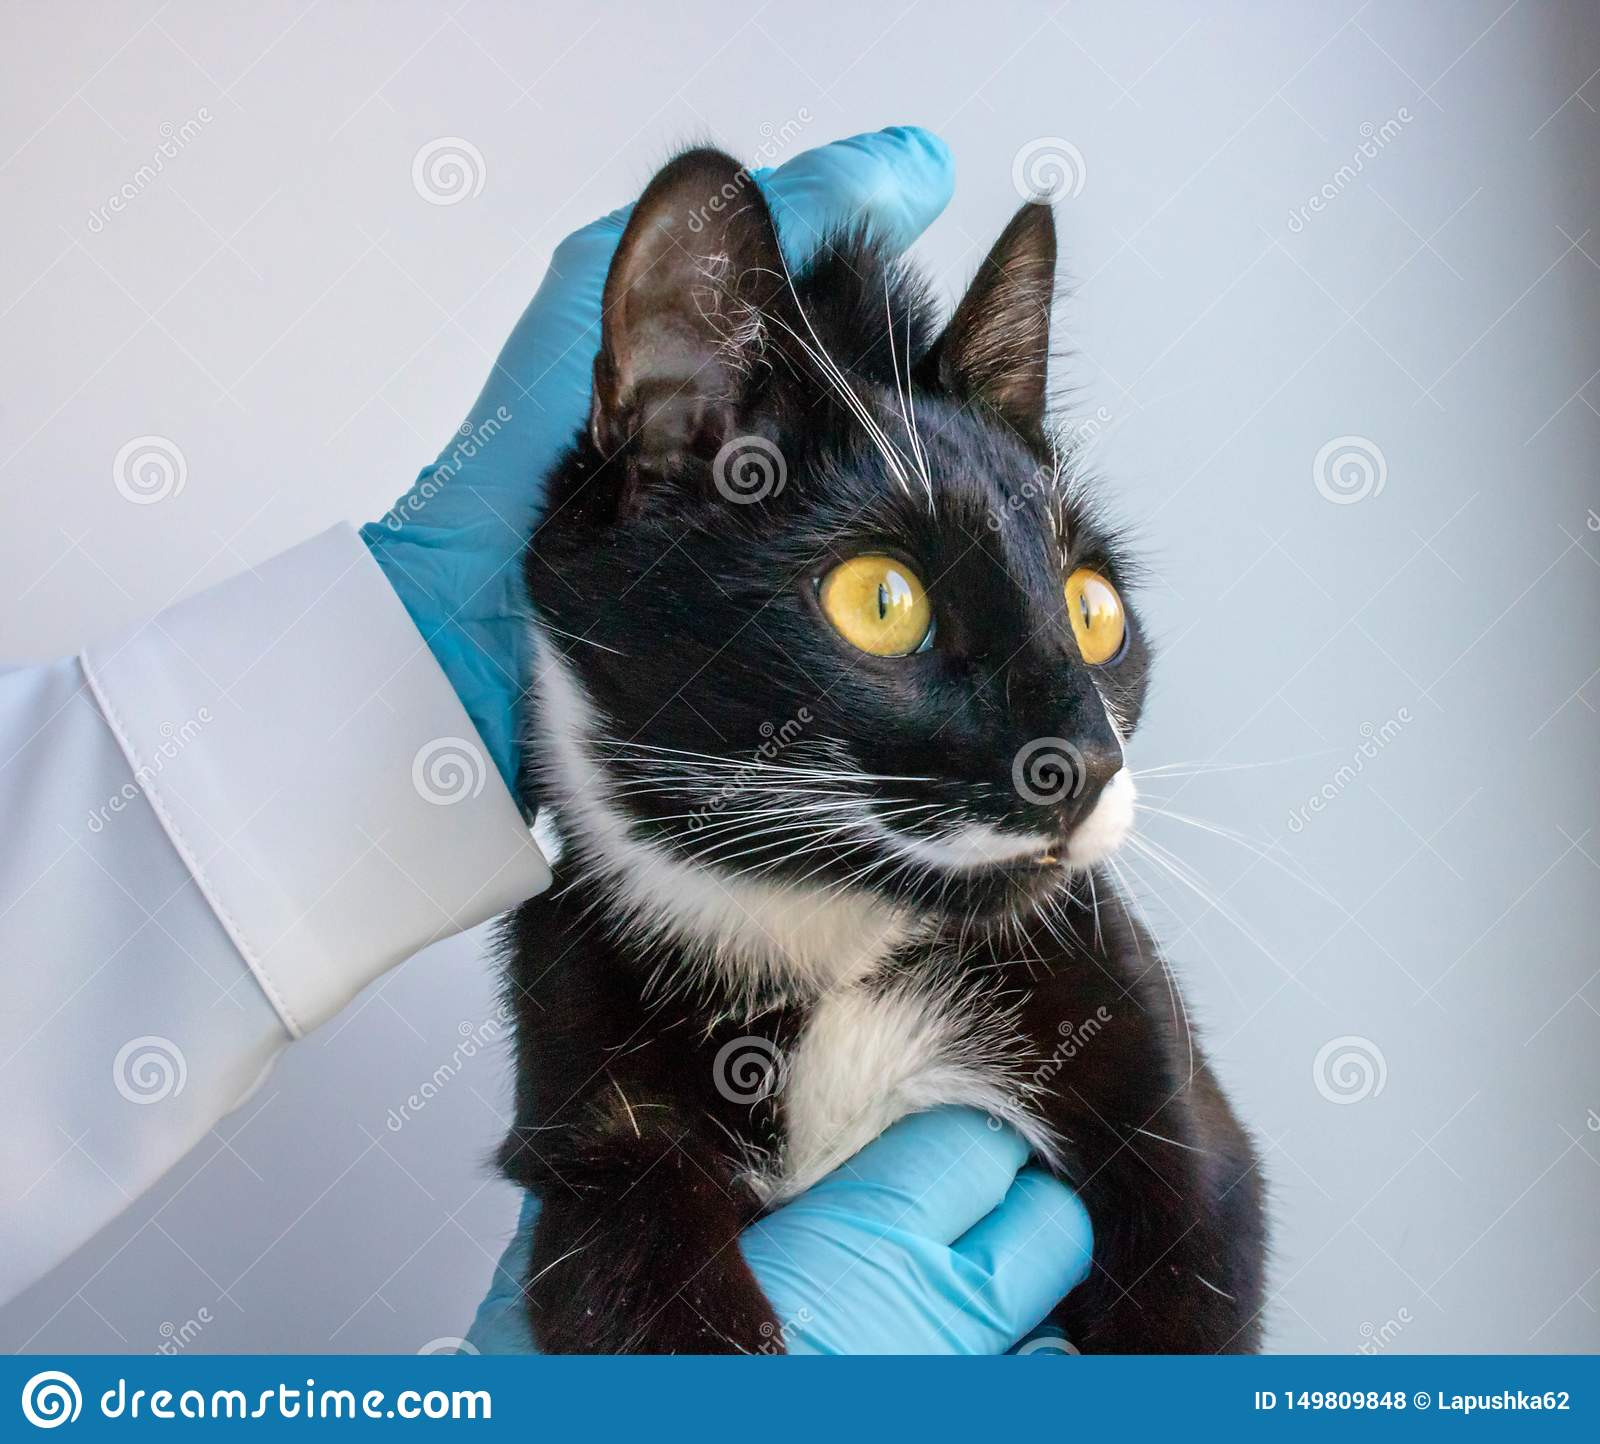 The blac cat keeps the doctor clinic